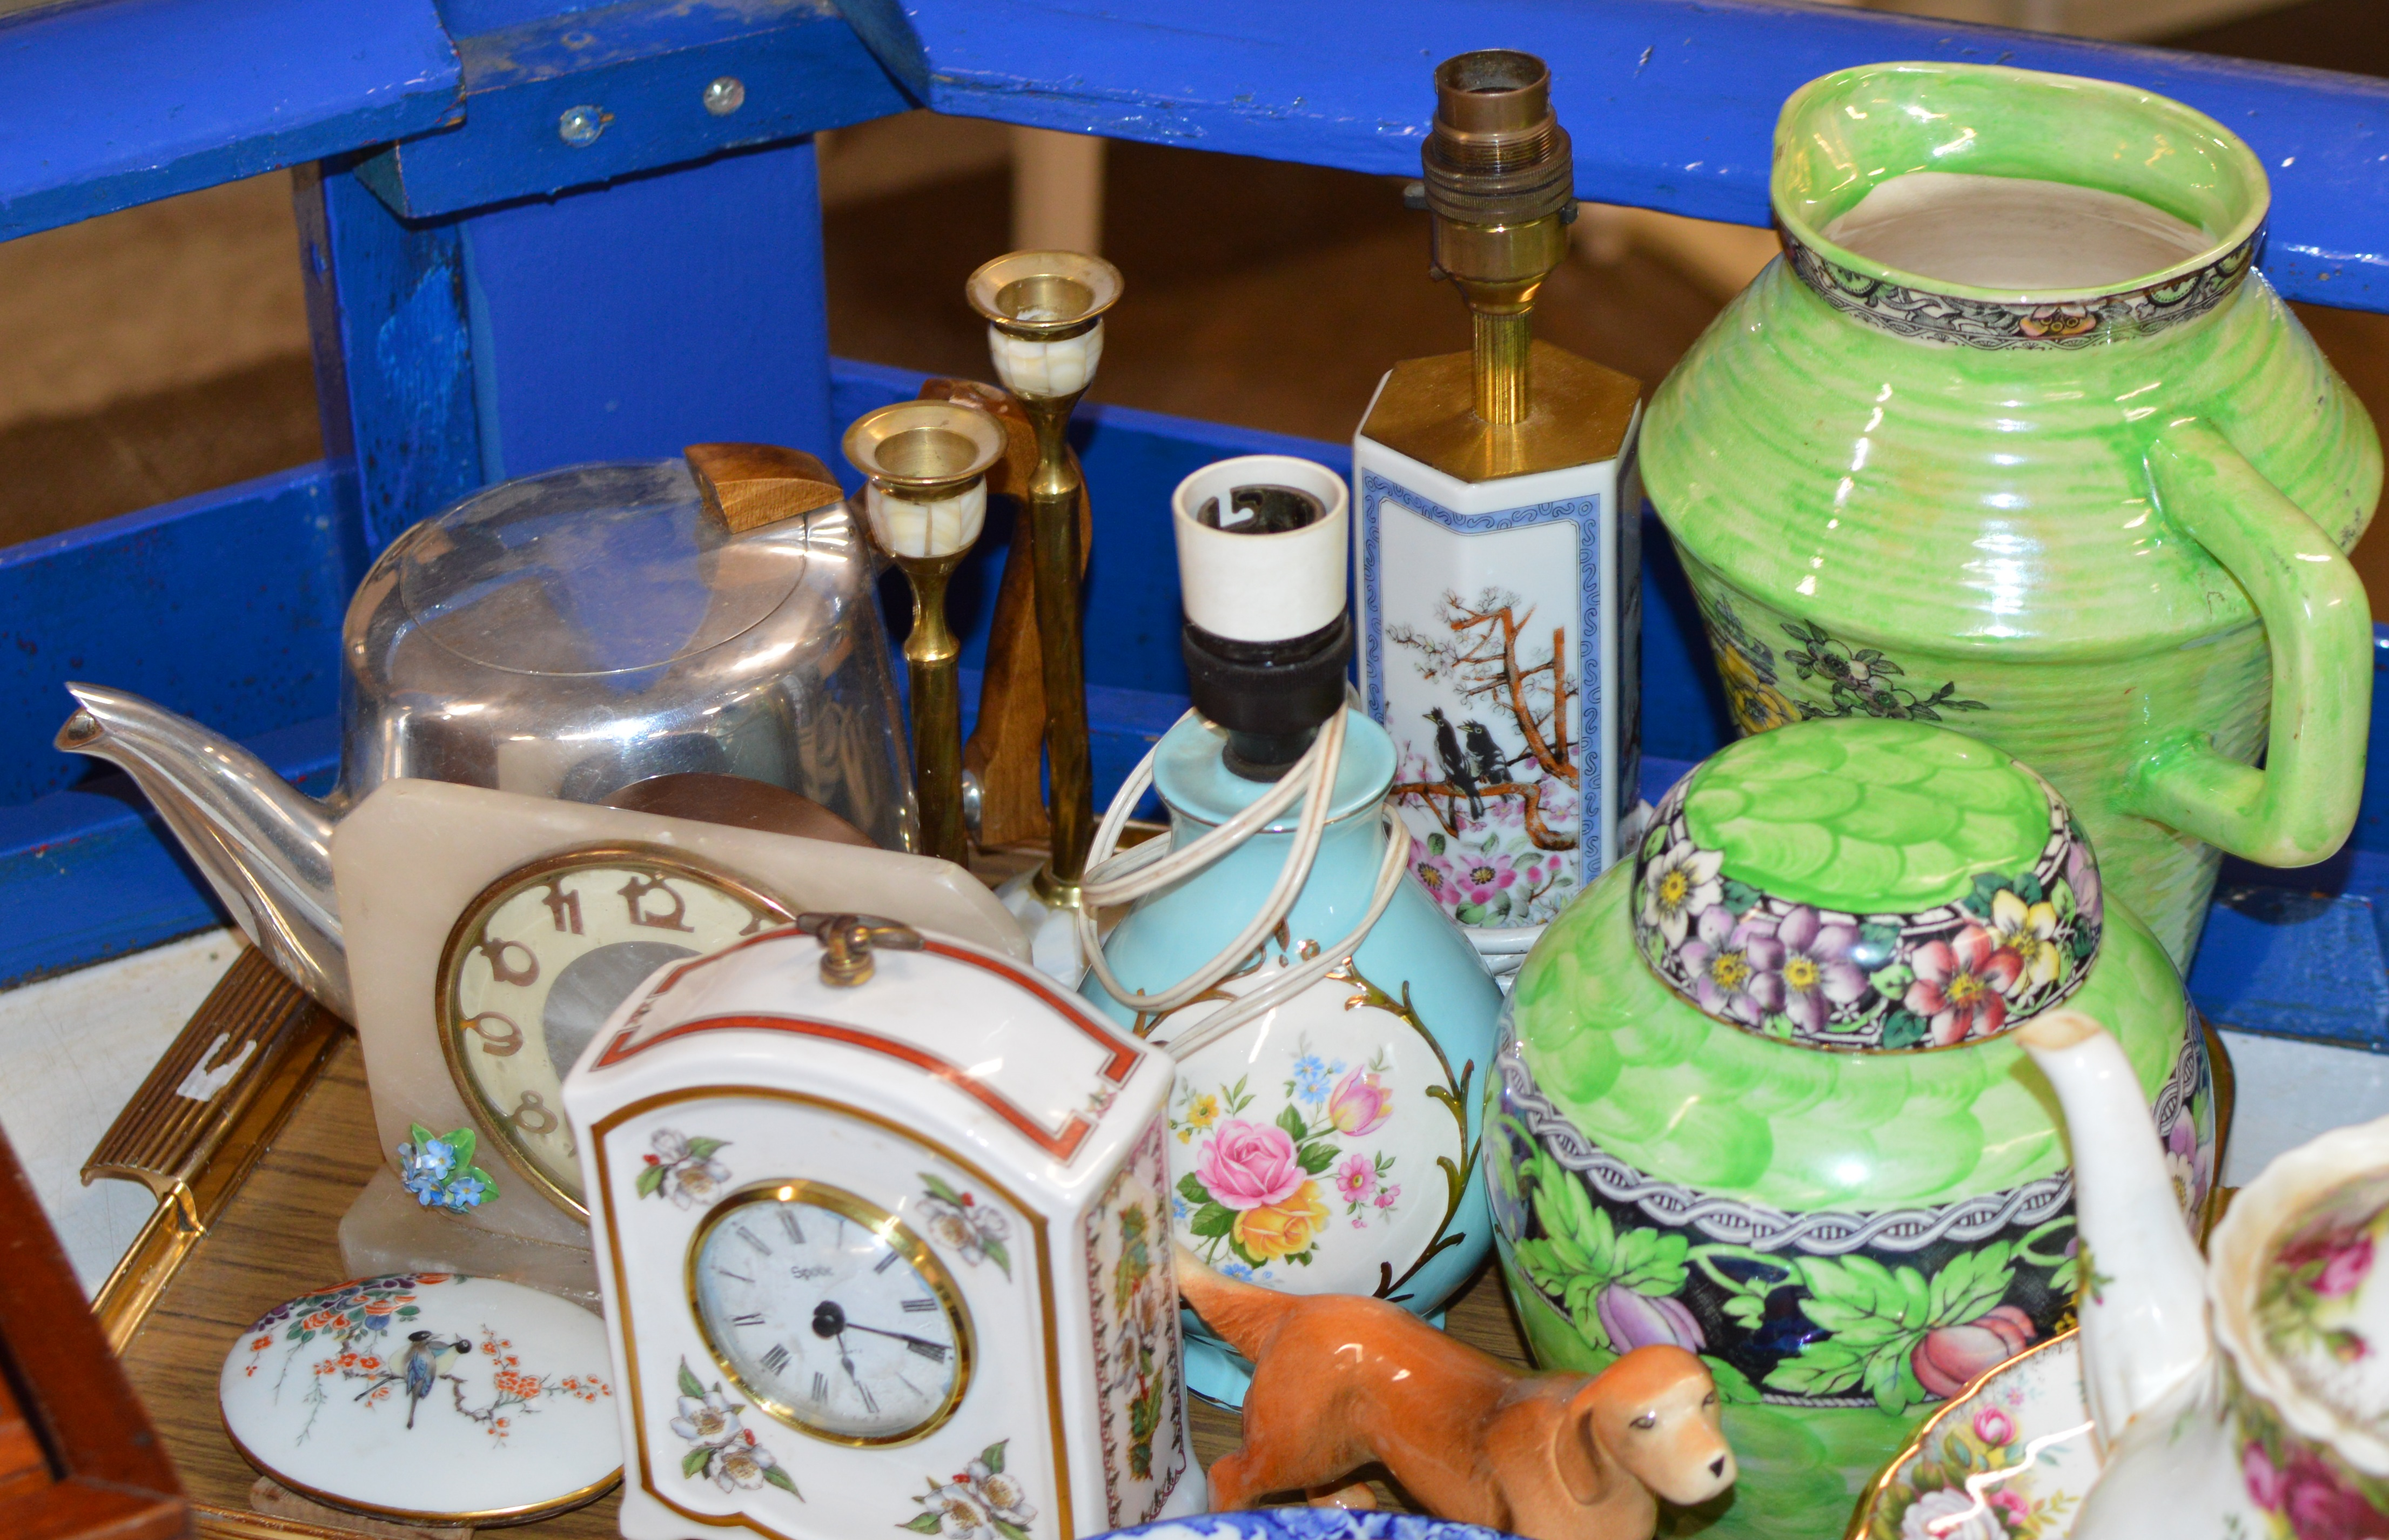 Lot 608 - TRAY CONTAINING ROYAL BRADWELL JUG, LAMPS, CANDLESTICKS, SPODE CLOCK, PICQUOT WARE TEAPOT, MANTLE